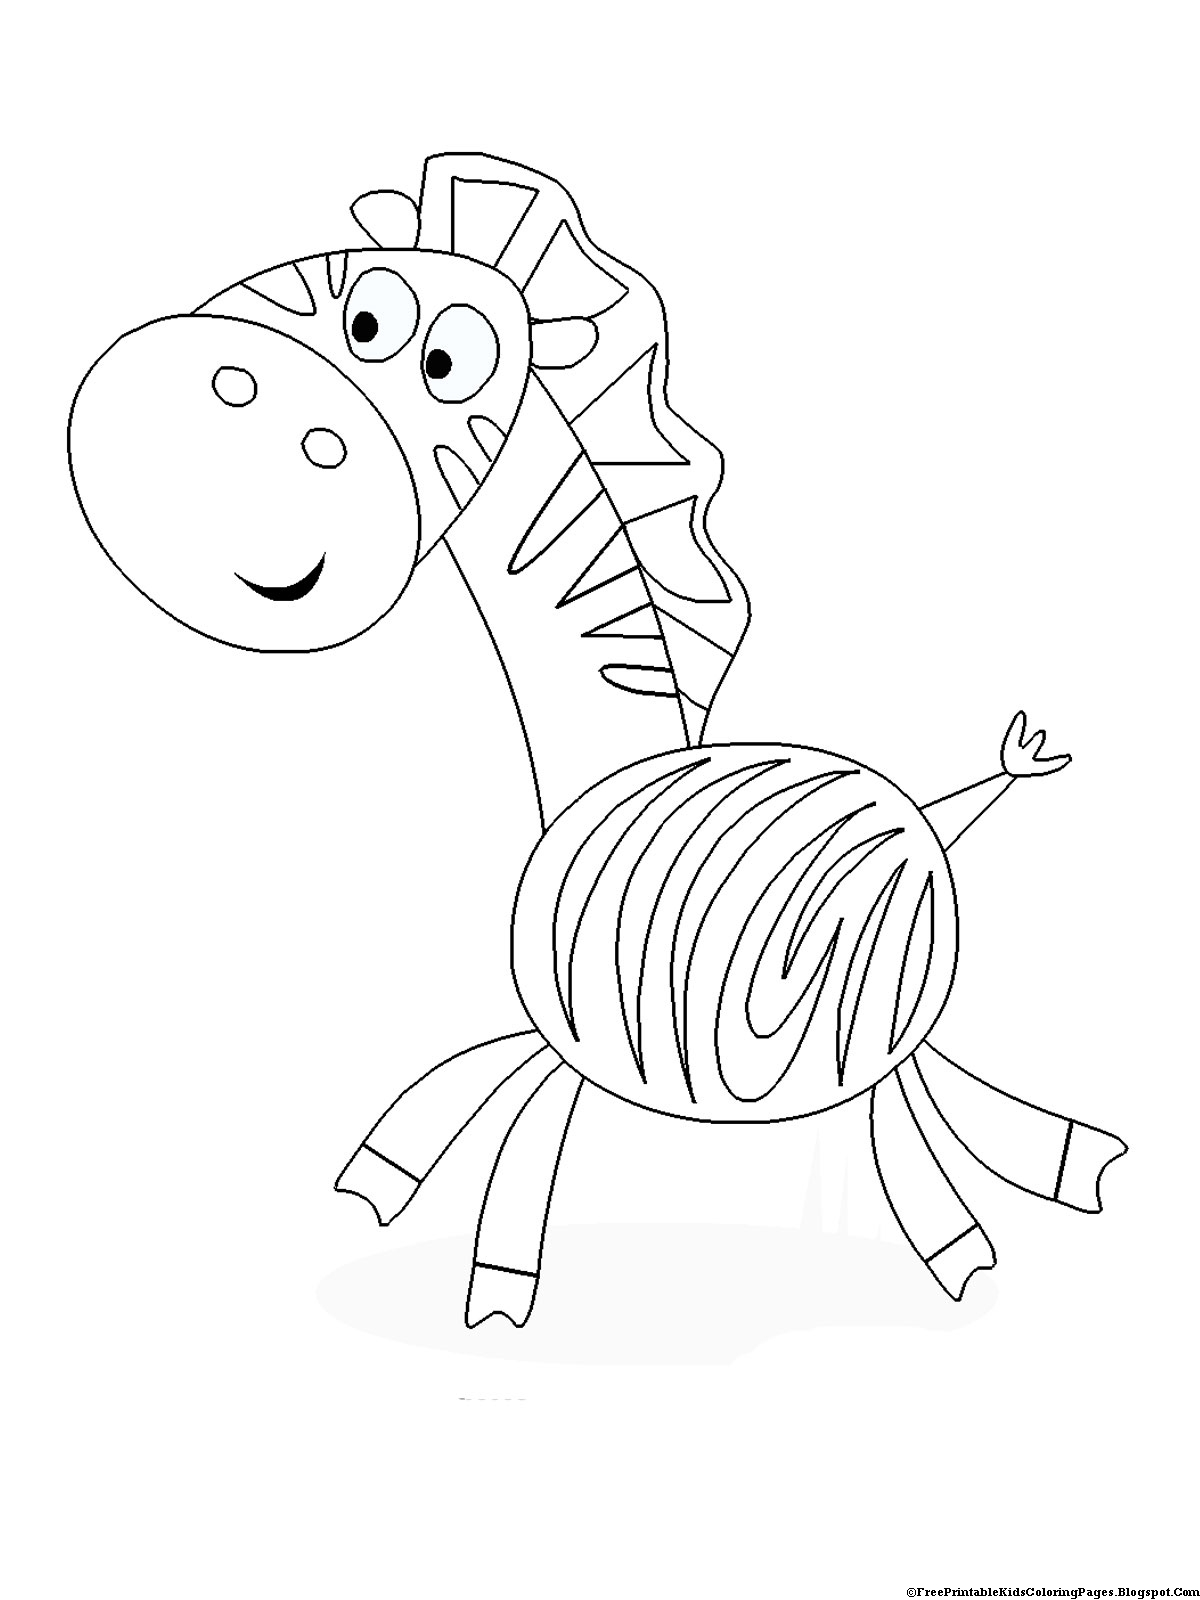 Zebra Coloring Pages - Free Printable Kids Coloring Pages | animal coloring pages for toddlers